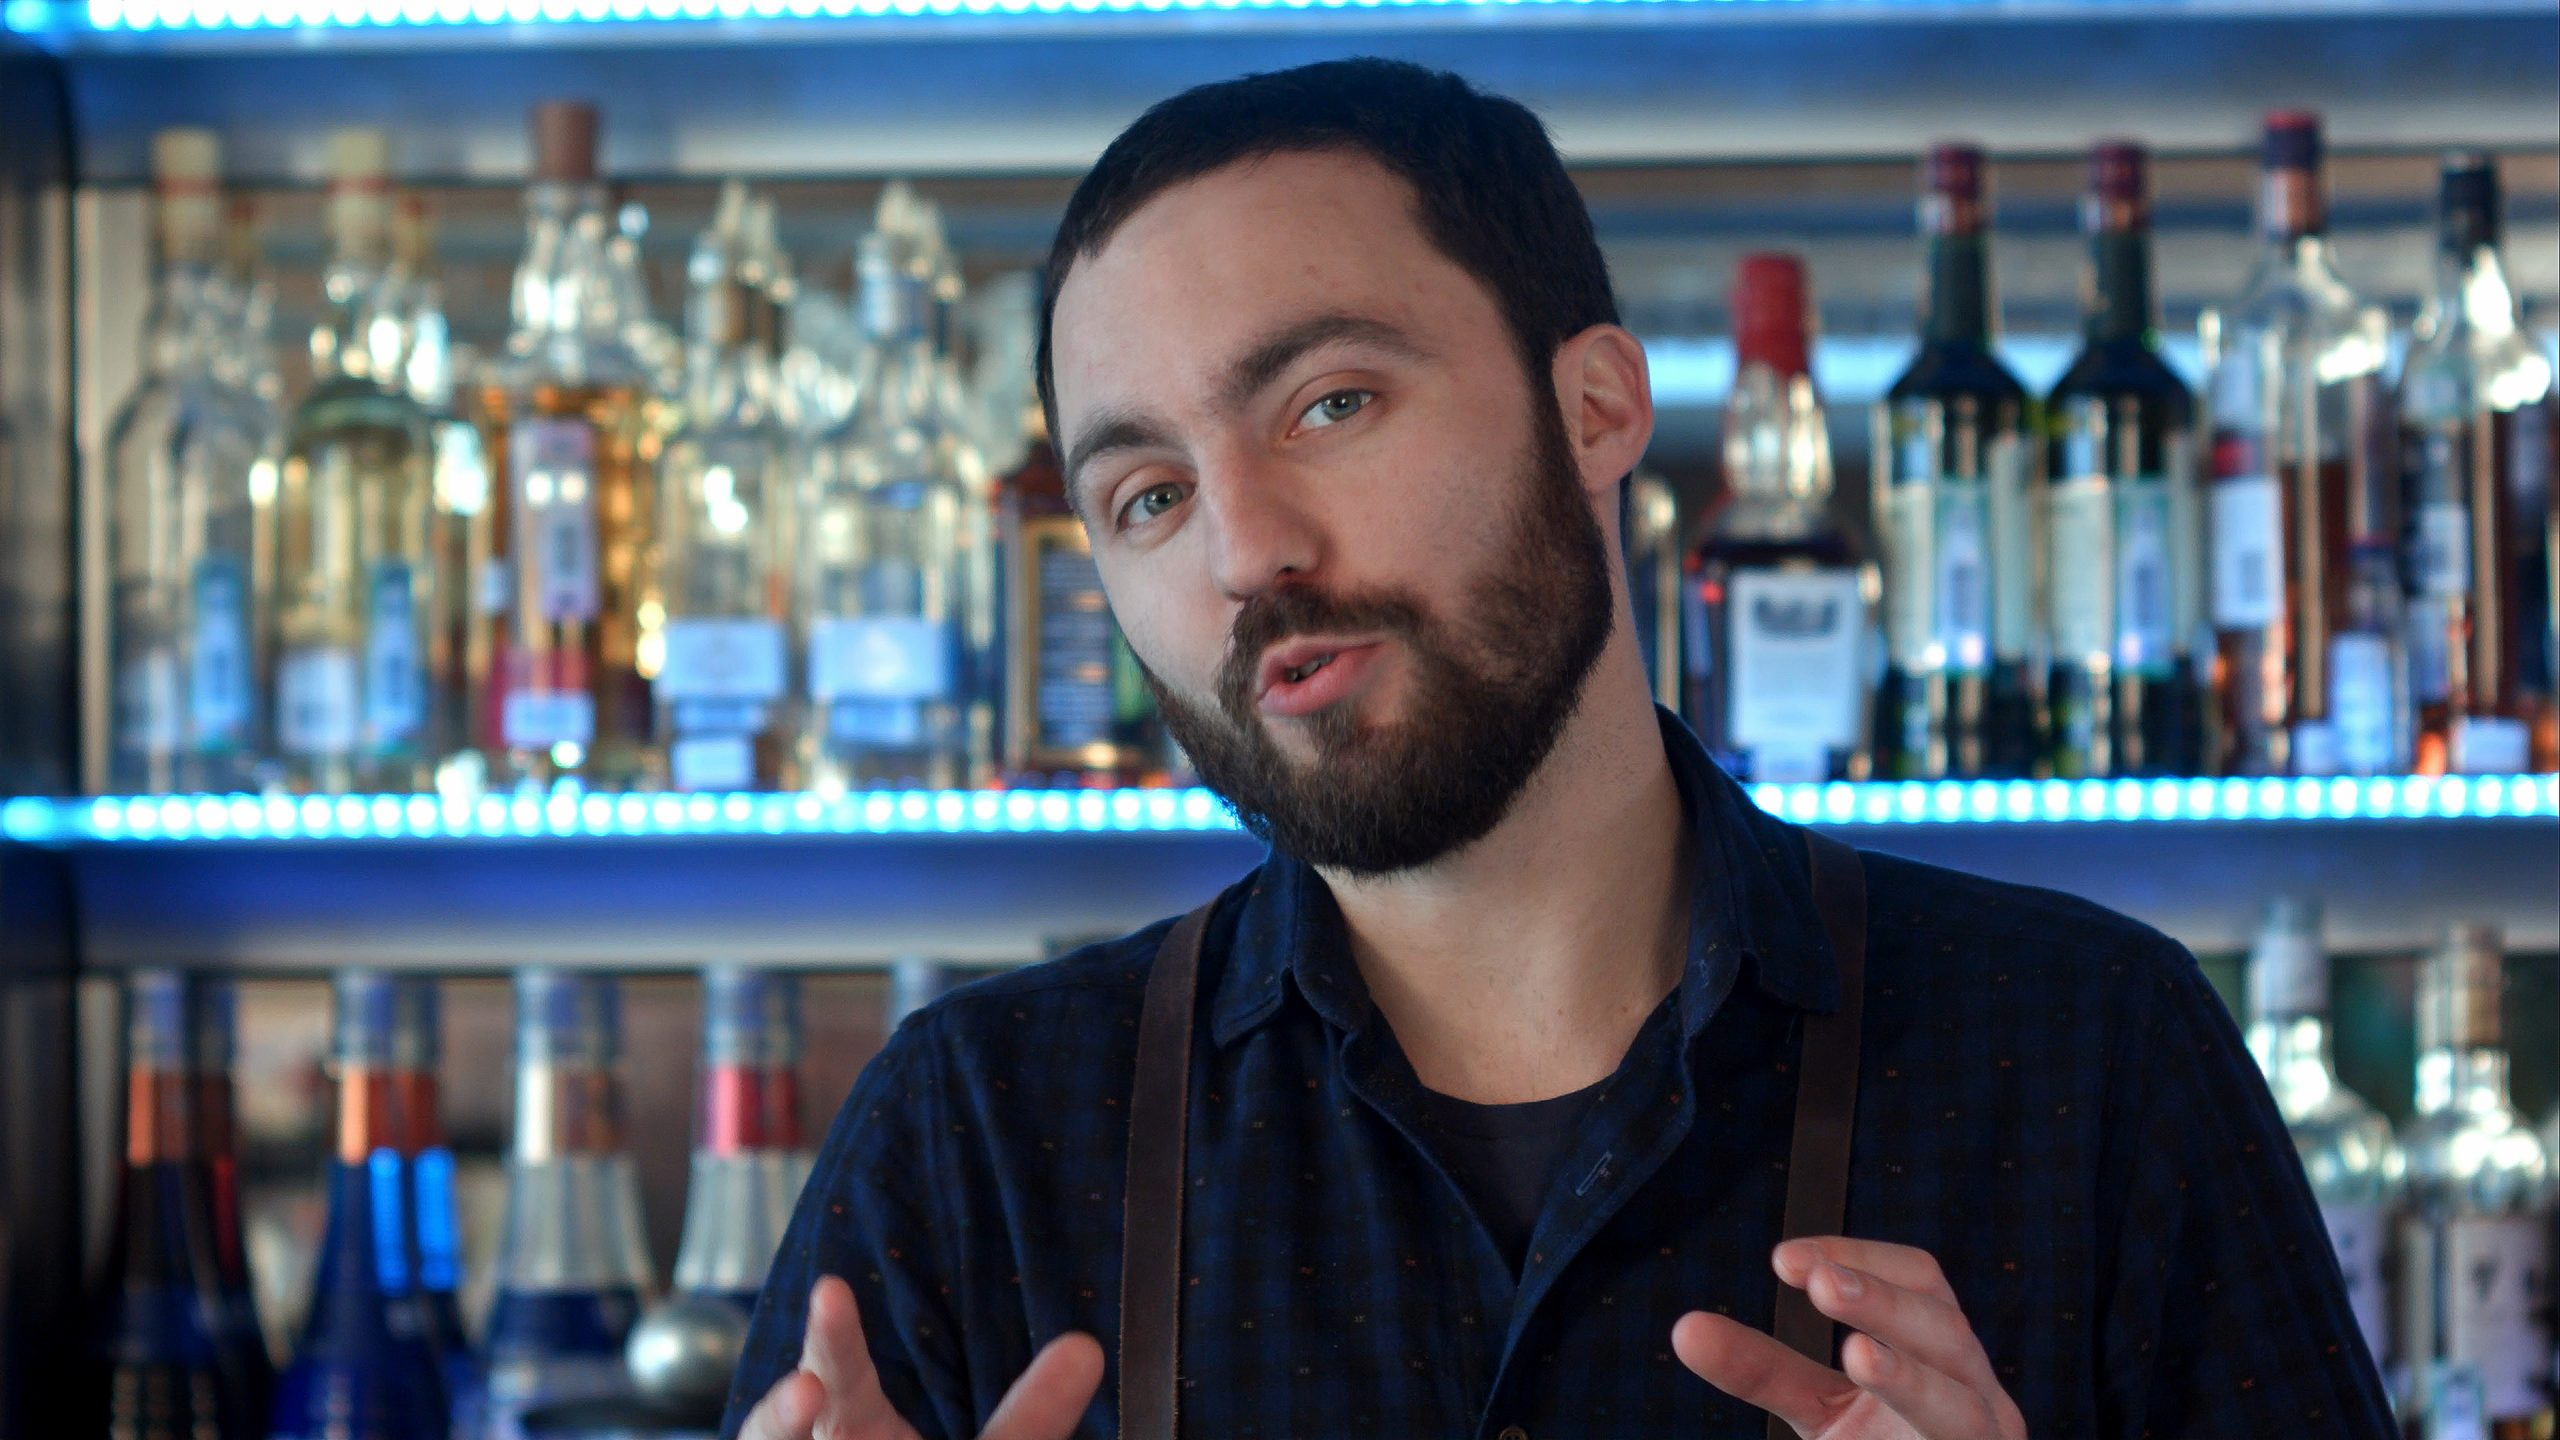 A bartender talking: Bartenders reveal code words they use to discuss customers